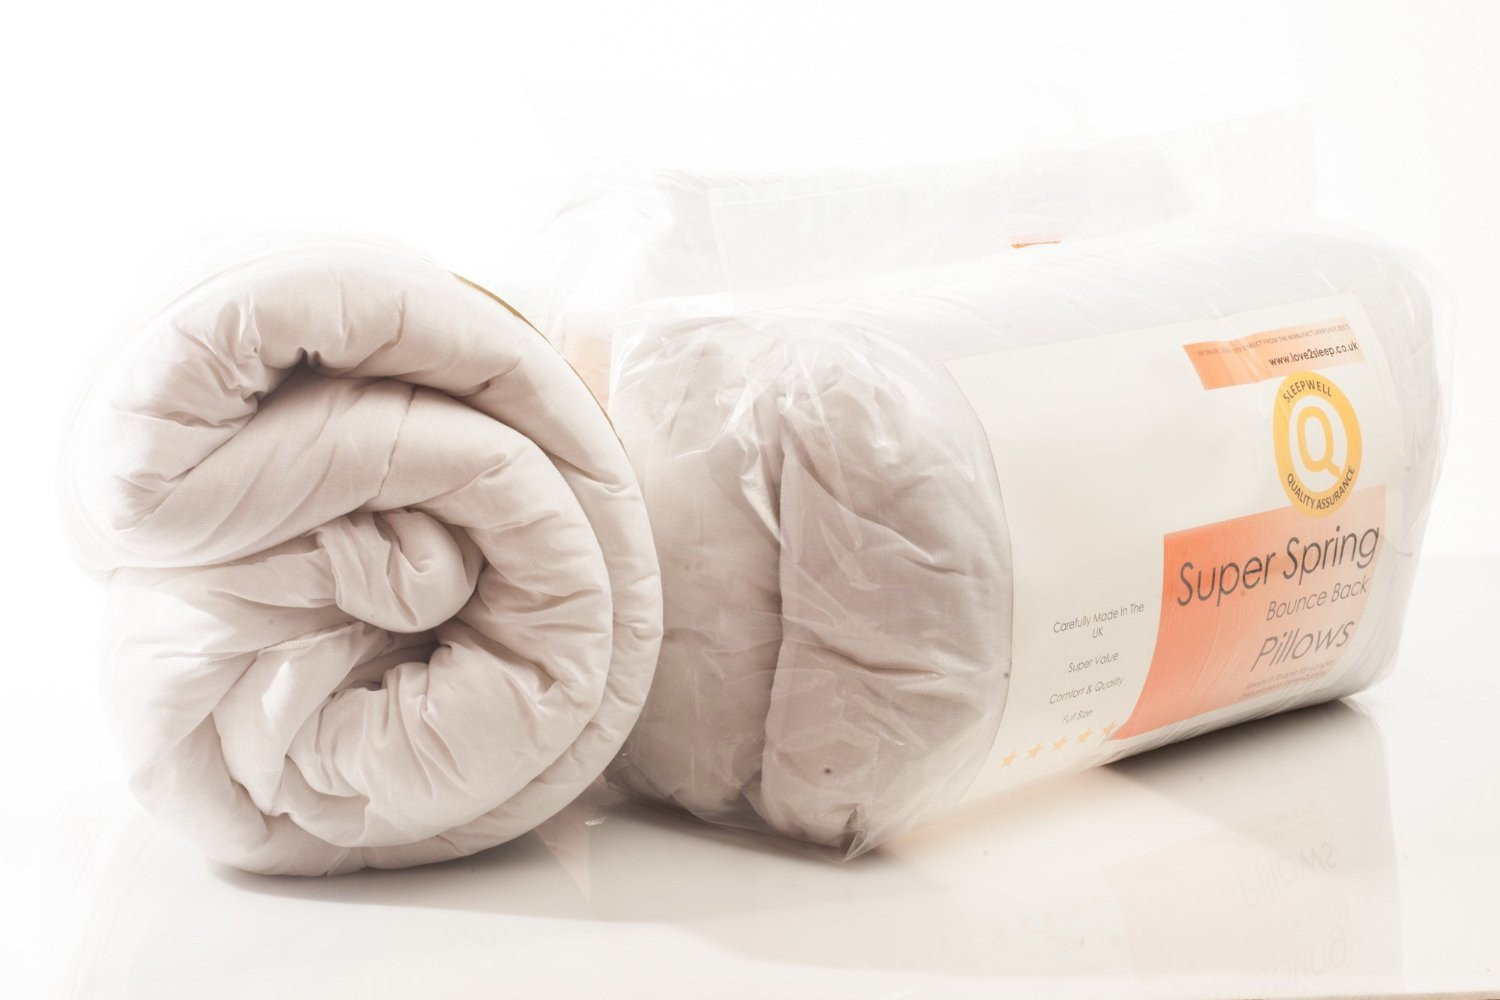 SleepyNights Love2Sleep AMAZING VALUE BUNDLE - SINGLE 4.5 TOG DUVET/QUILT WITH 2 ULTRA BOUNCE PILLOWS NON ALLERGENIC SOFT TOUCH POLY COTTON